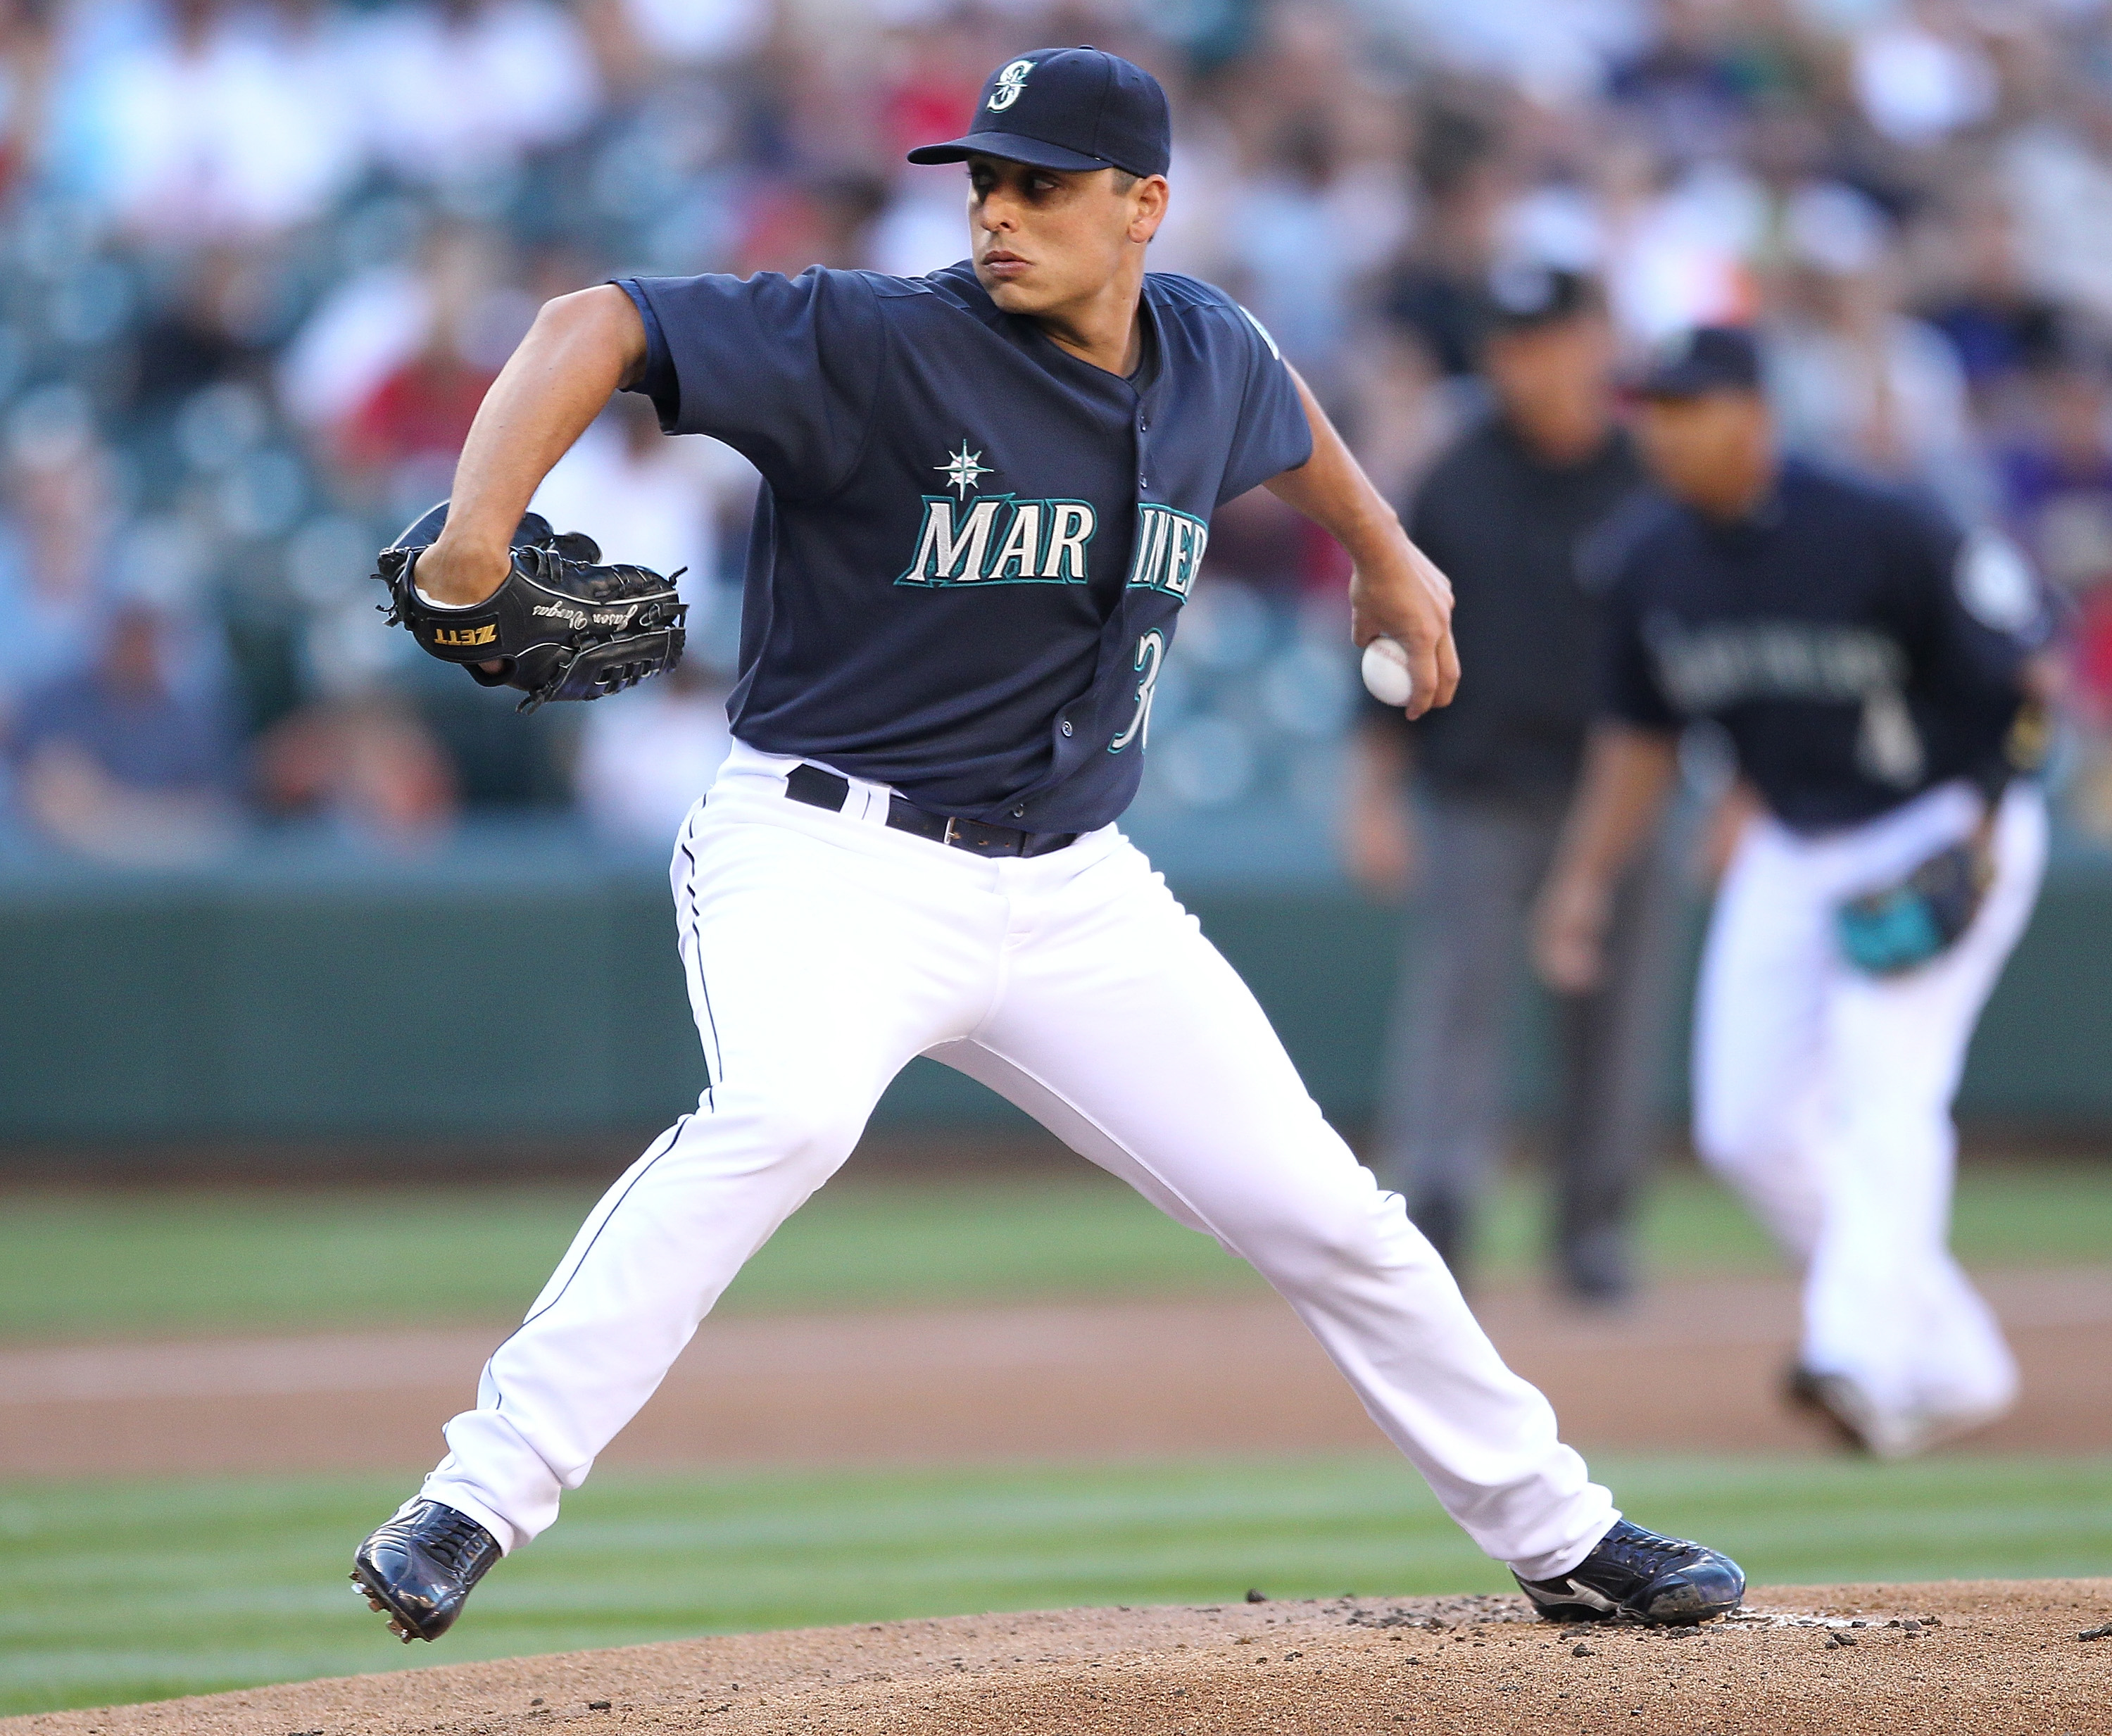 SEATTLE - JULY 23:  Starting pitcher Jason Vargas #38 of the Seattle Mariners pitches against the Boston Red Sox at Safeco Field on July 23, 2010 in Seattle, Washington. (Photo by Otto Greule Jr/Getty Images)